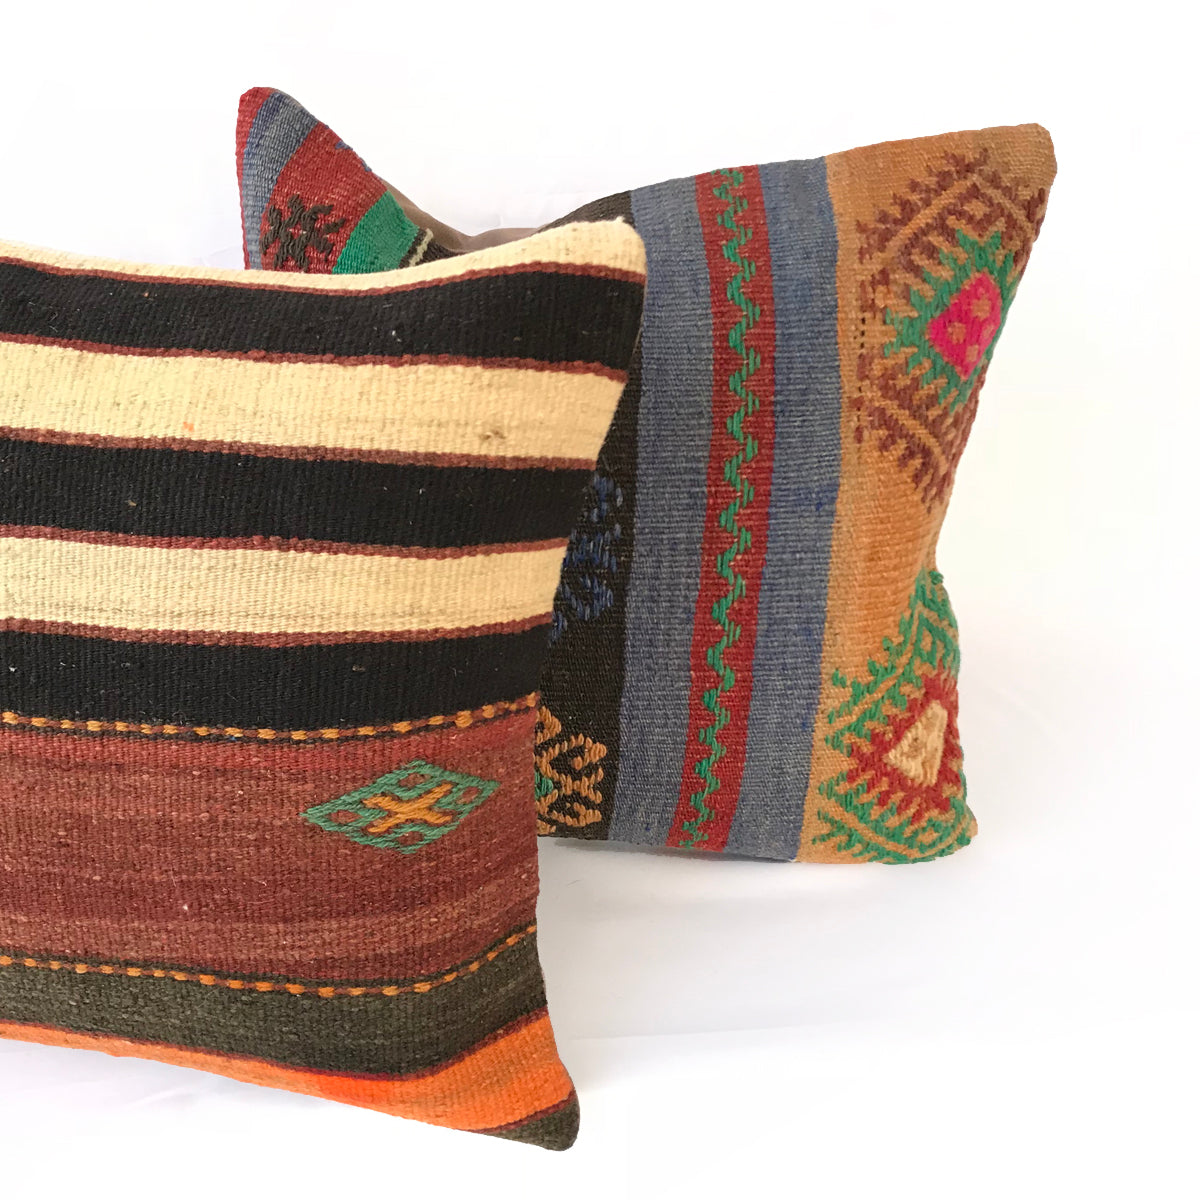 products pillow collections image collectiv kilim turkish pillows co all